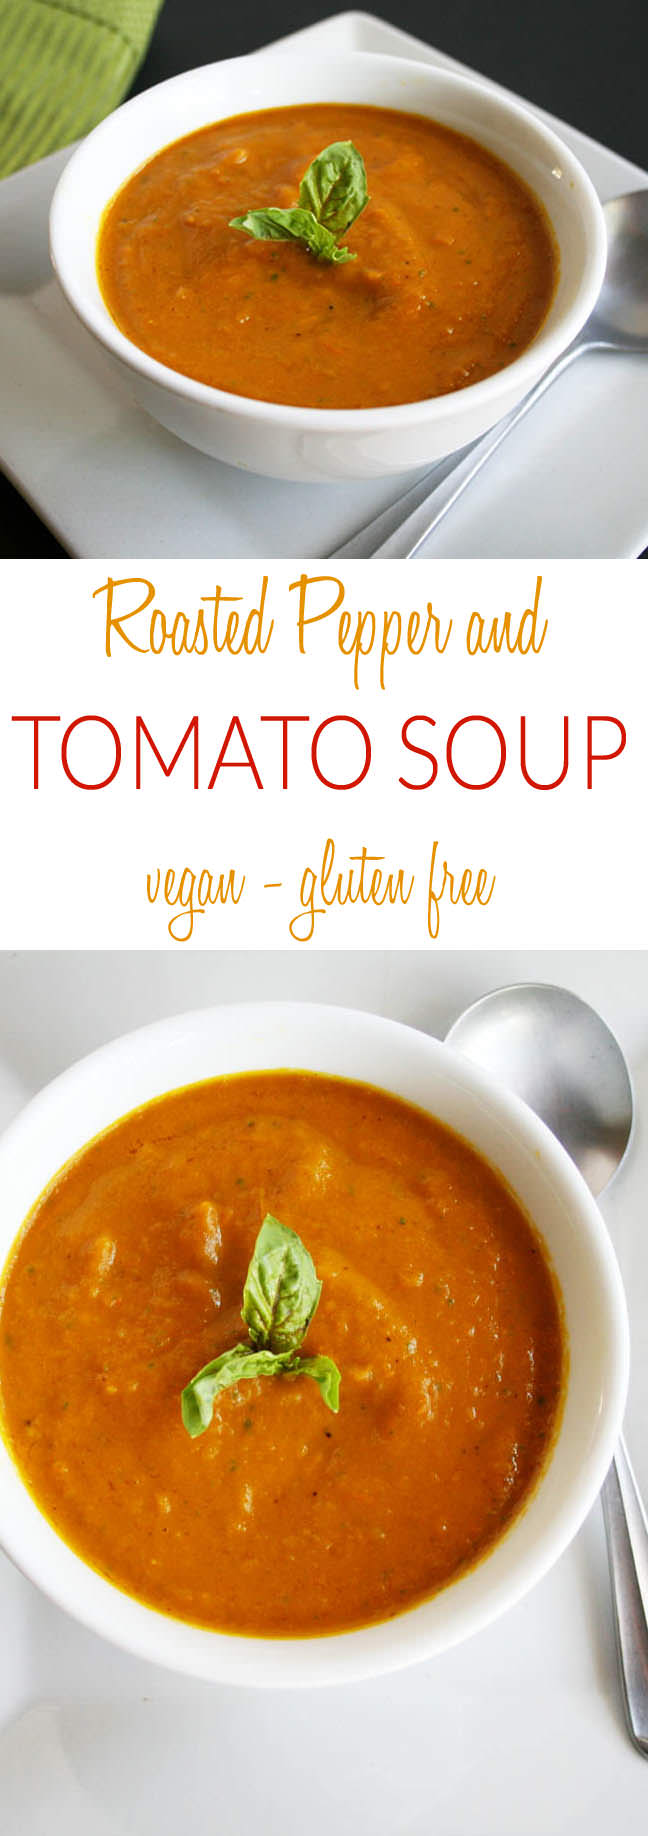 Roasted Pepper and Tomato Soup collage photo for Pinterest with two photos and text in between.